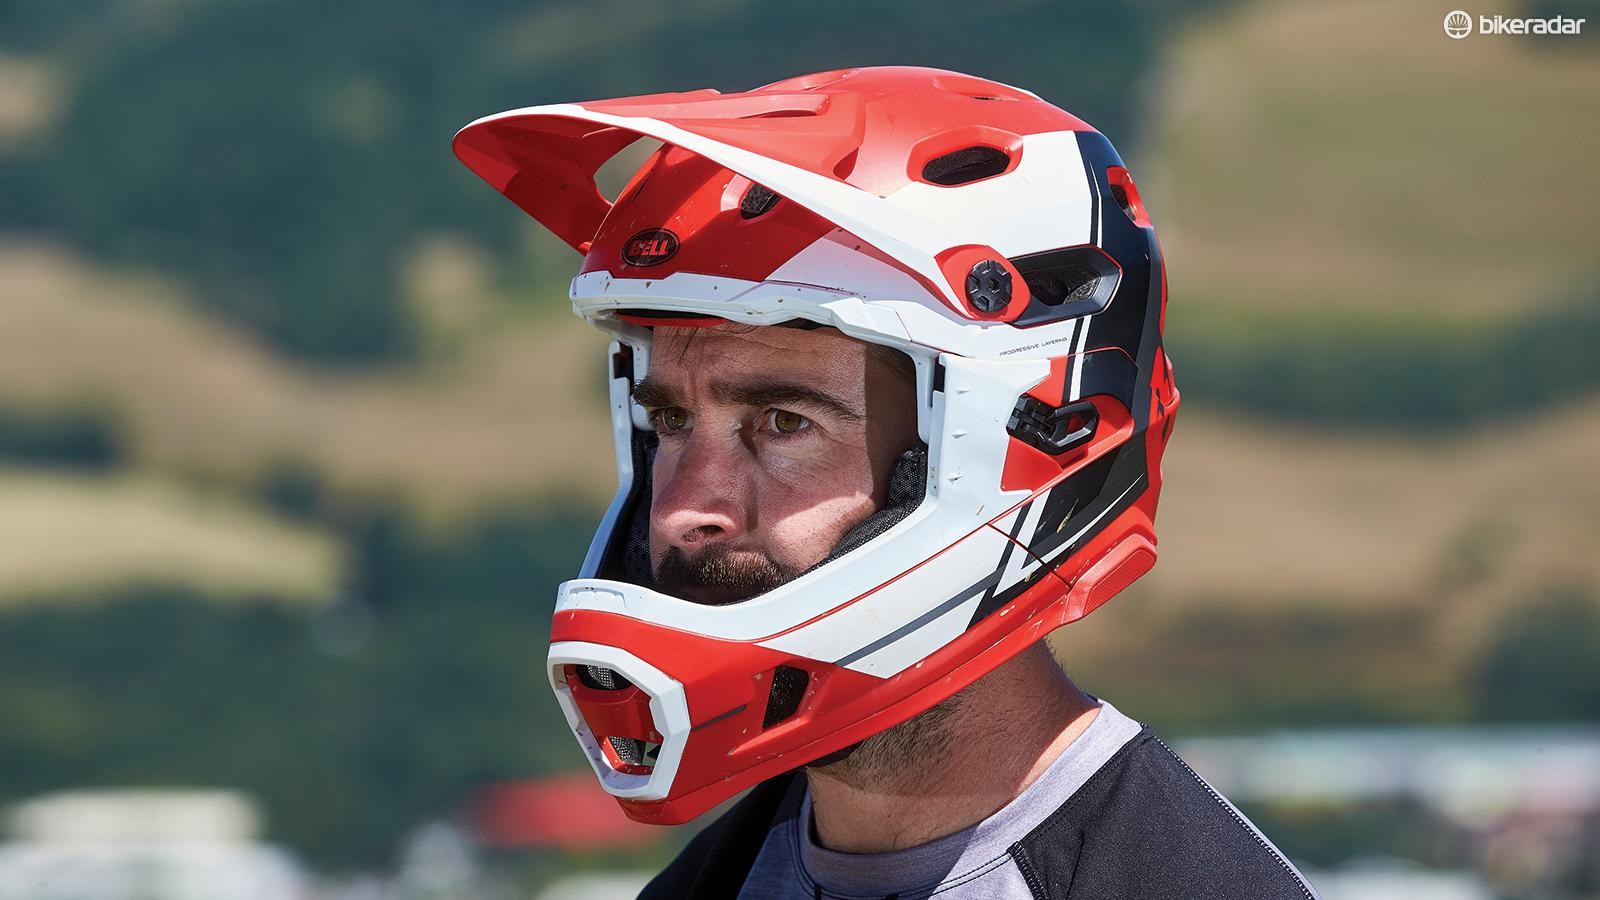 Provides a similar level of protection to a regular full-face, but far easier to forget about when you're working hard